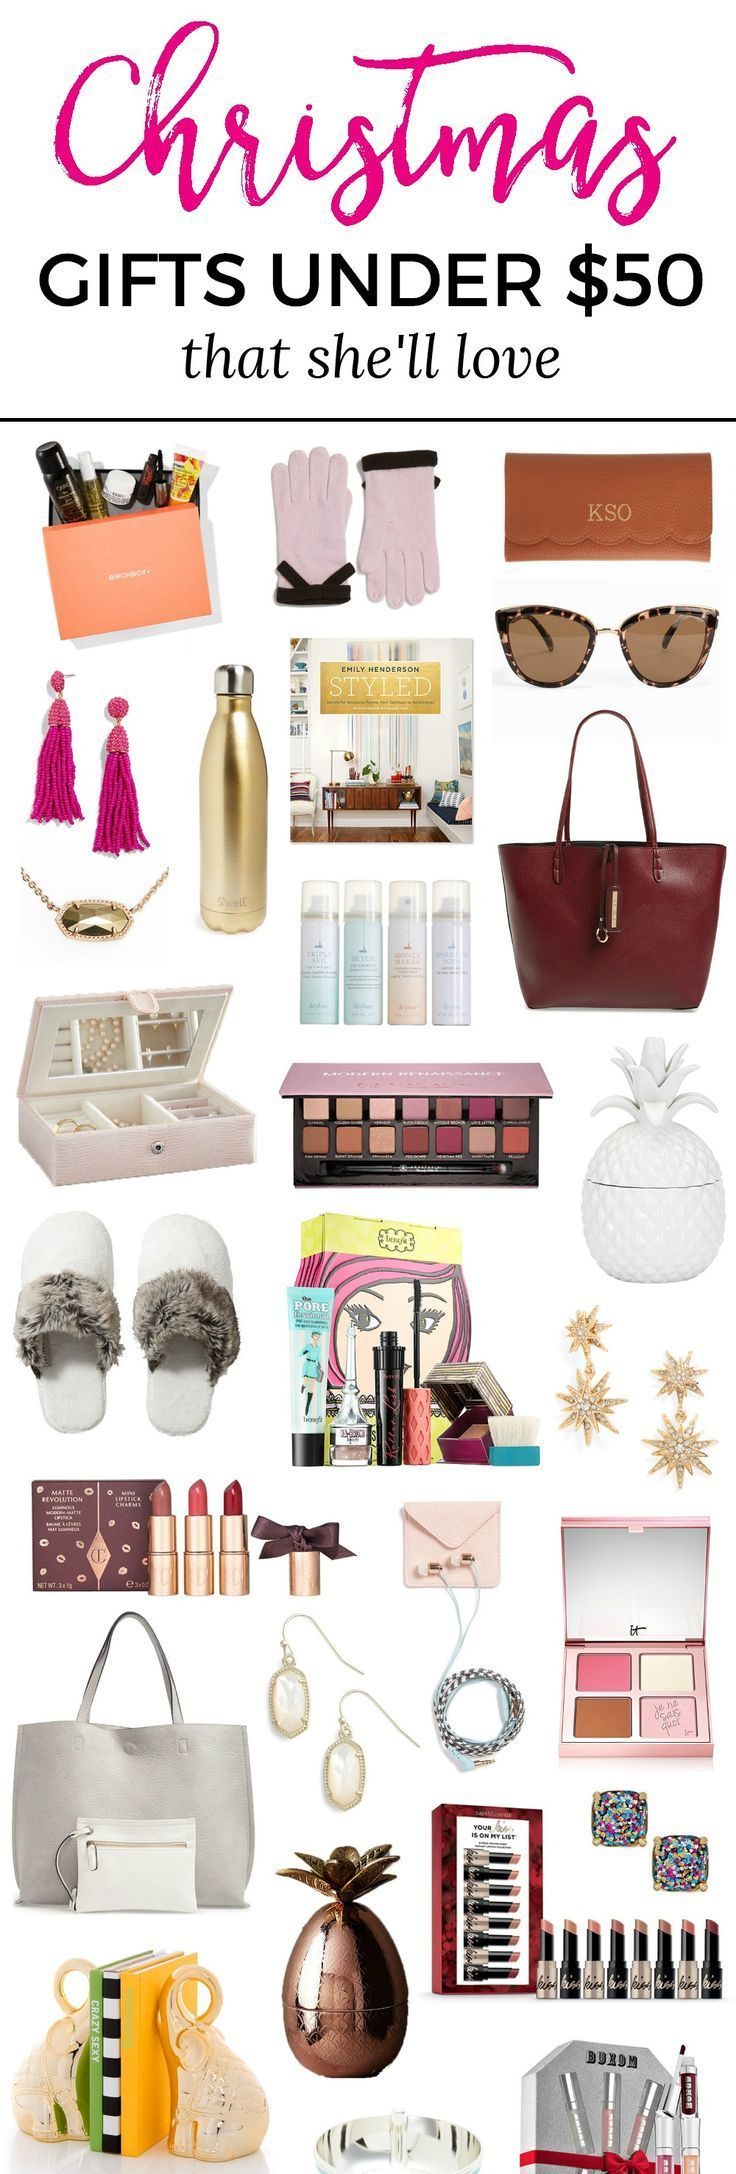 The Best Christmas Gift Ideas for Women under $50 | LIFE - Gift ...